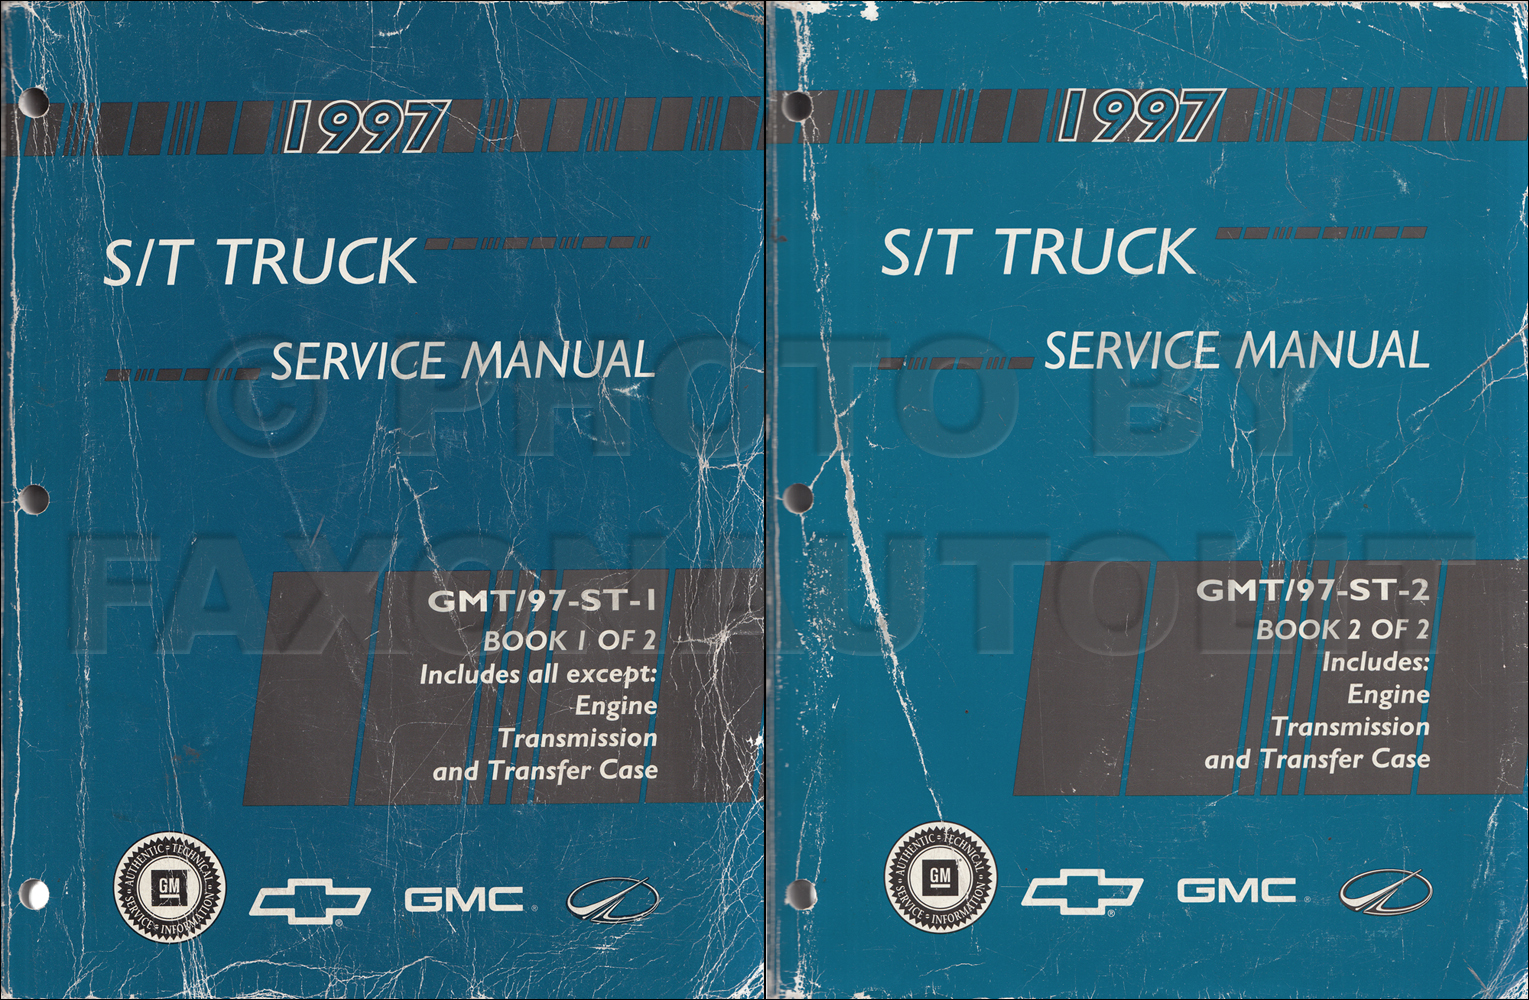 2001 gmc jimmy service manual how to and user guide instructions u2022 rh taxibermuda co gm factory service manual saturn gm factory service manual torrents